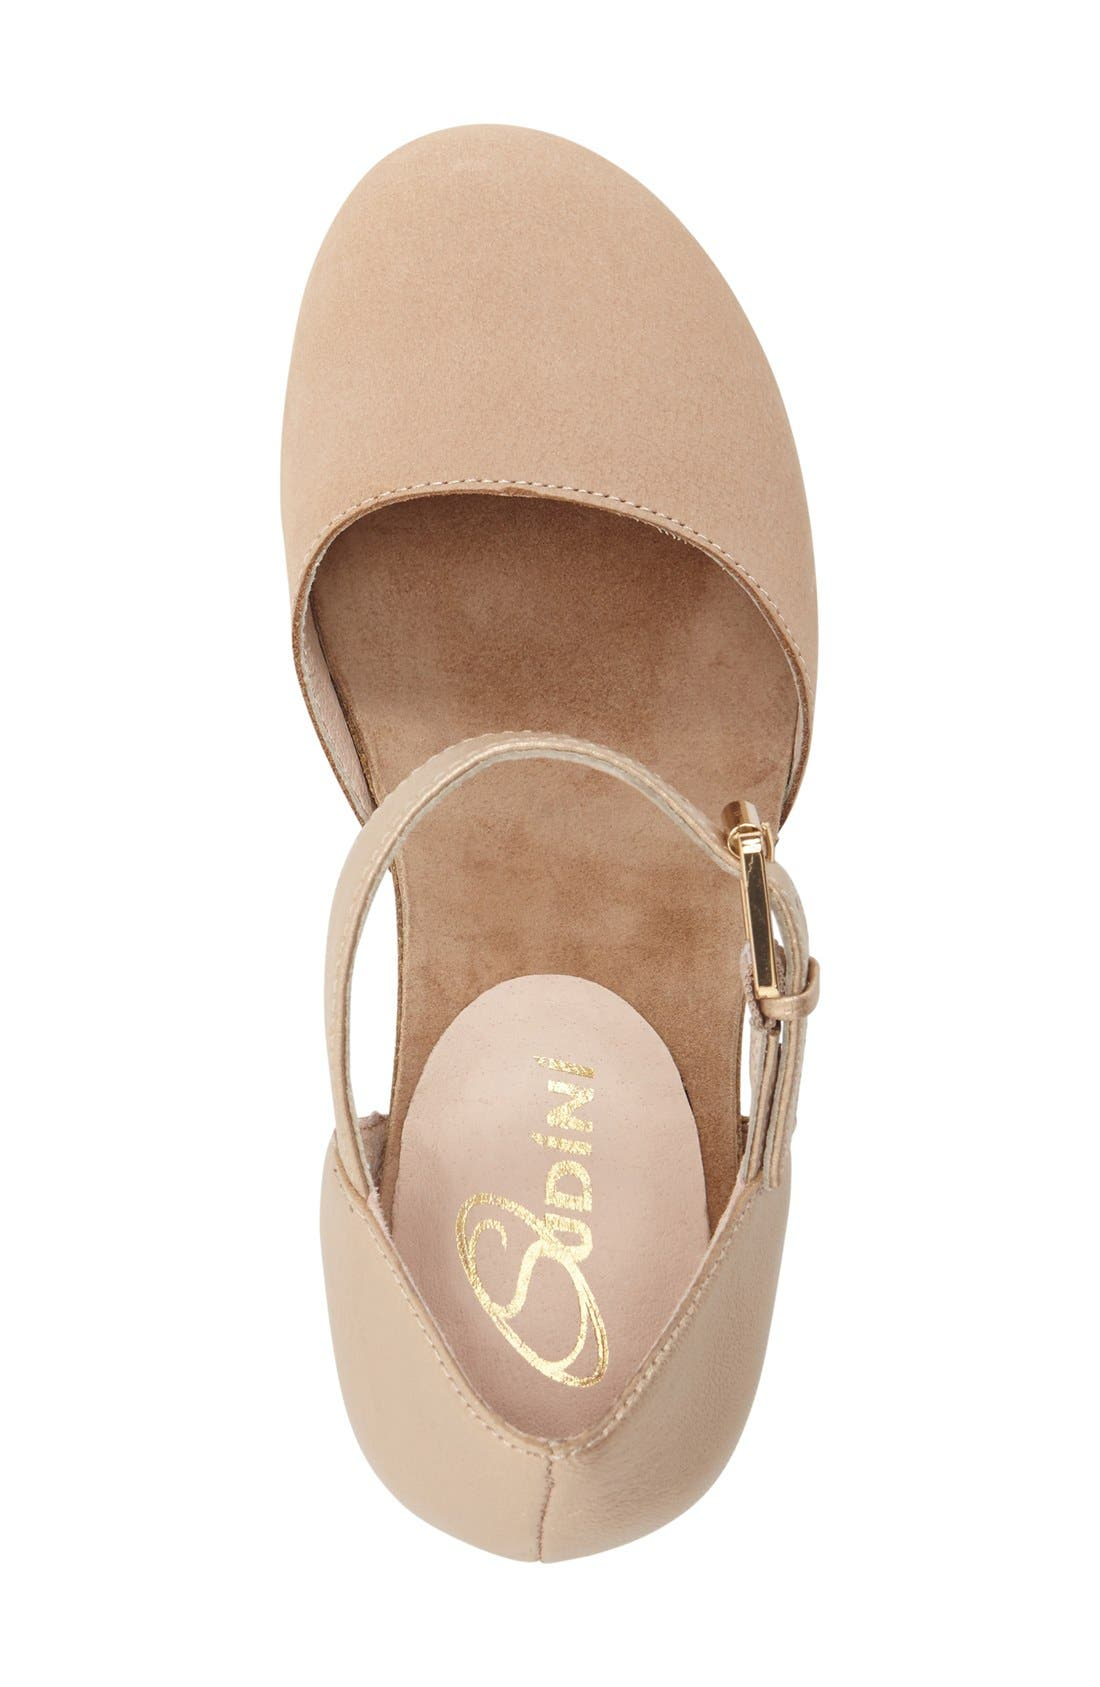 'Cam' Mary Jane Pump,                             Alternate thumbnail 3, color,                             Sand Leather